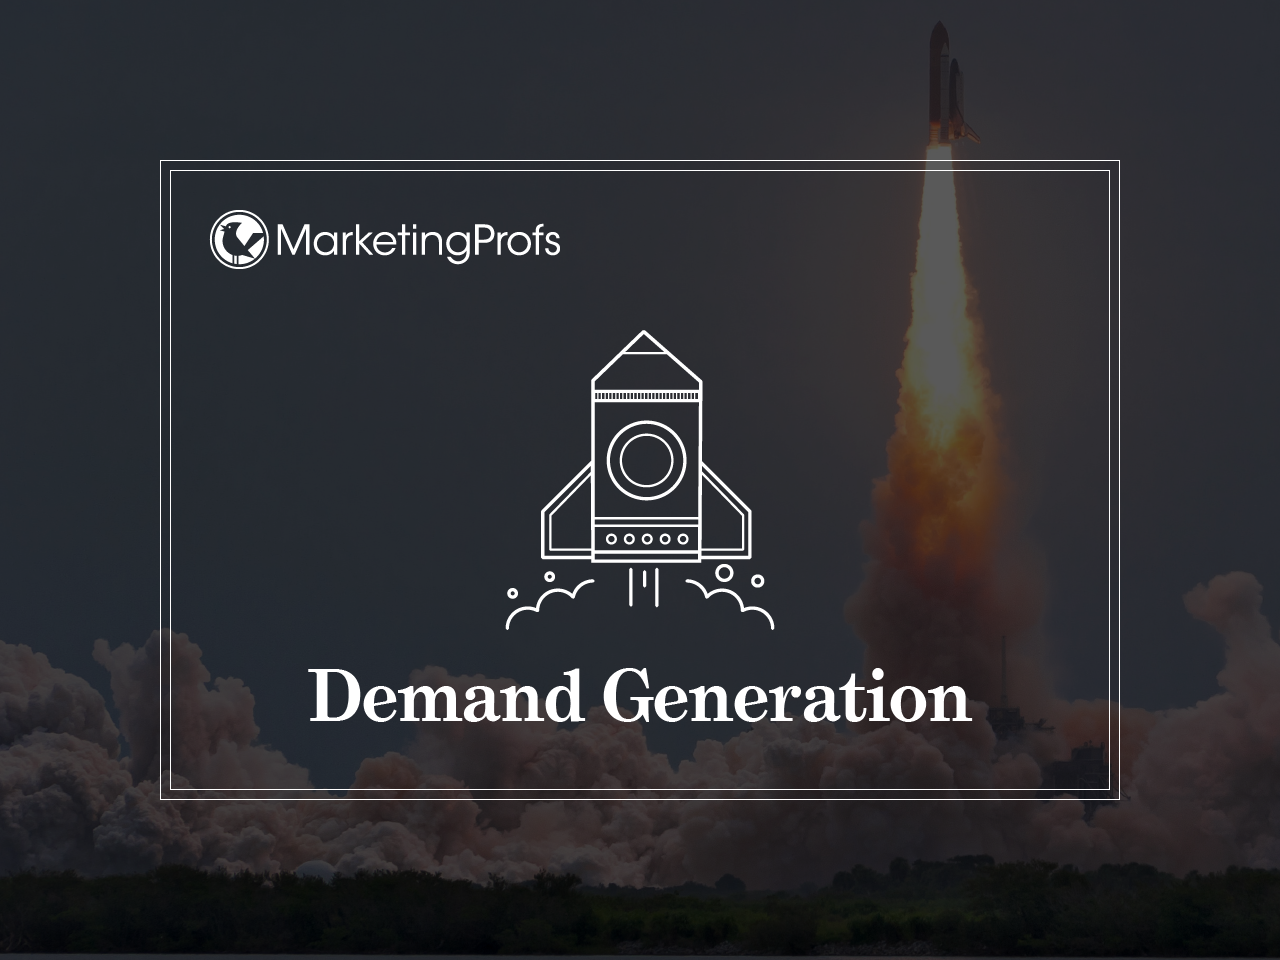 marketingprofs.com - Majda Anwar - 10 Demand-Gen Campaign 'Gotchas' to Overcome for Flawless Marketing Automation Execution